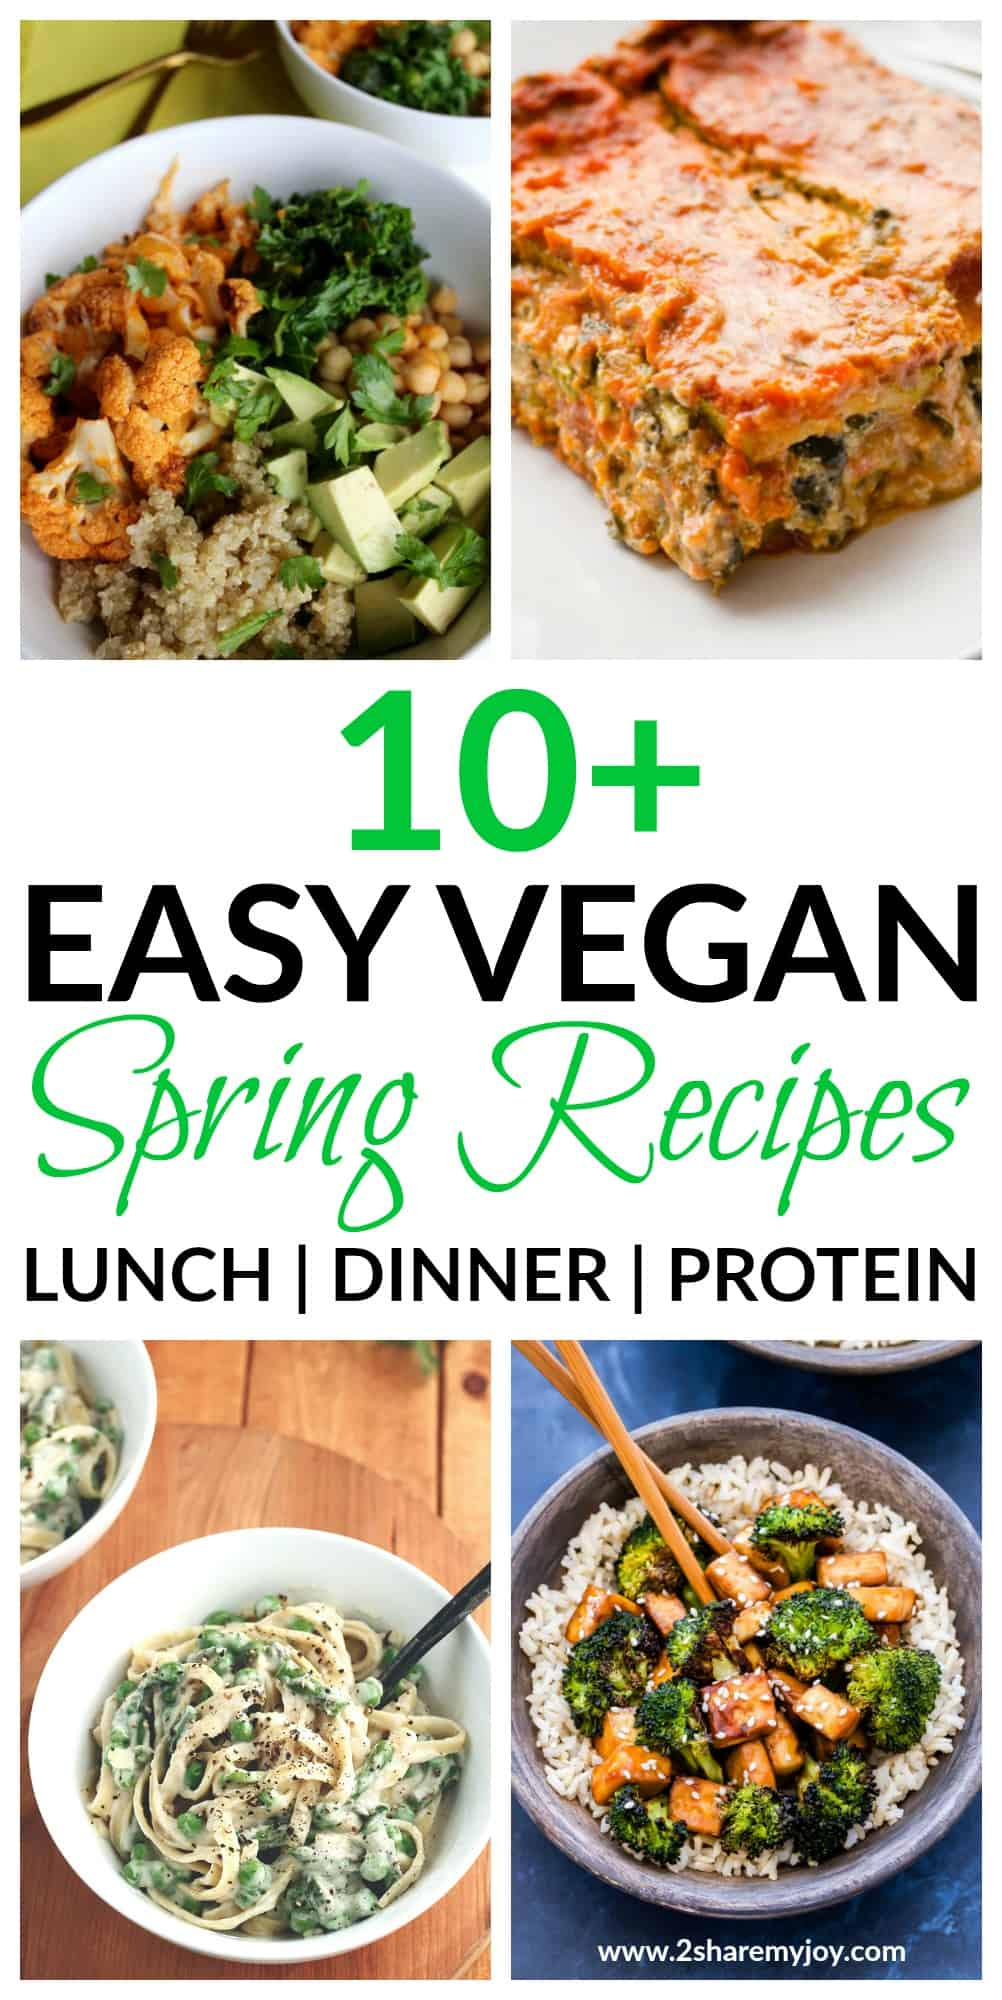 Easy vegan spring recipes for a whole food plant based diet. High protein dinner recipes that can also be used for lunch. These vegan recipes make great weight loss meals too and are budget friendly. Artichokes, broccoli, Brussels sprouts, cauliflower, leeks, lettuce,mushrooms #veganrecipe #springrecipe #healthyrecipe